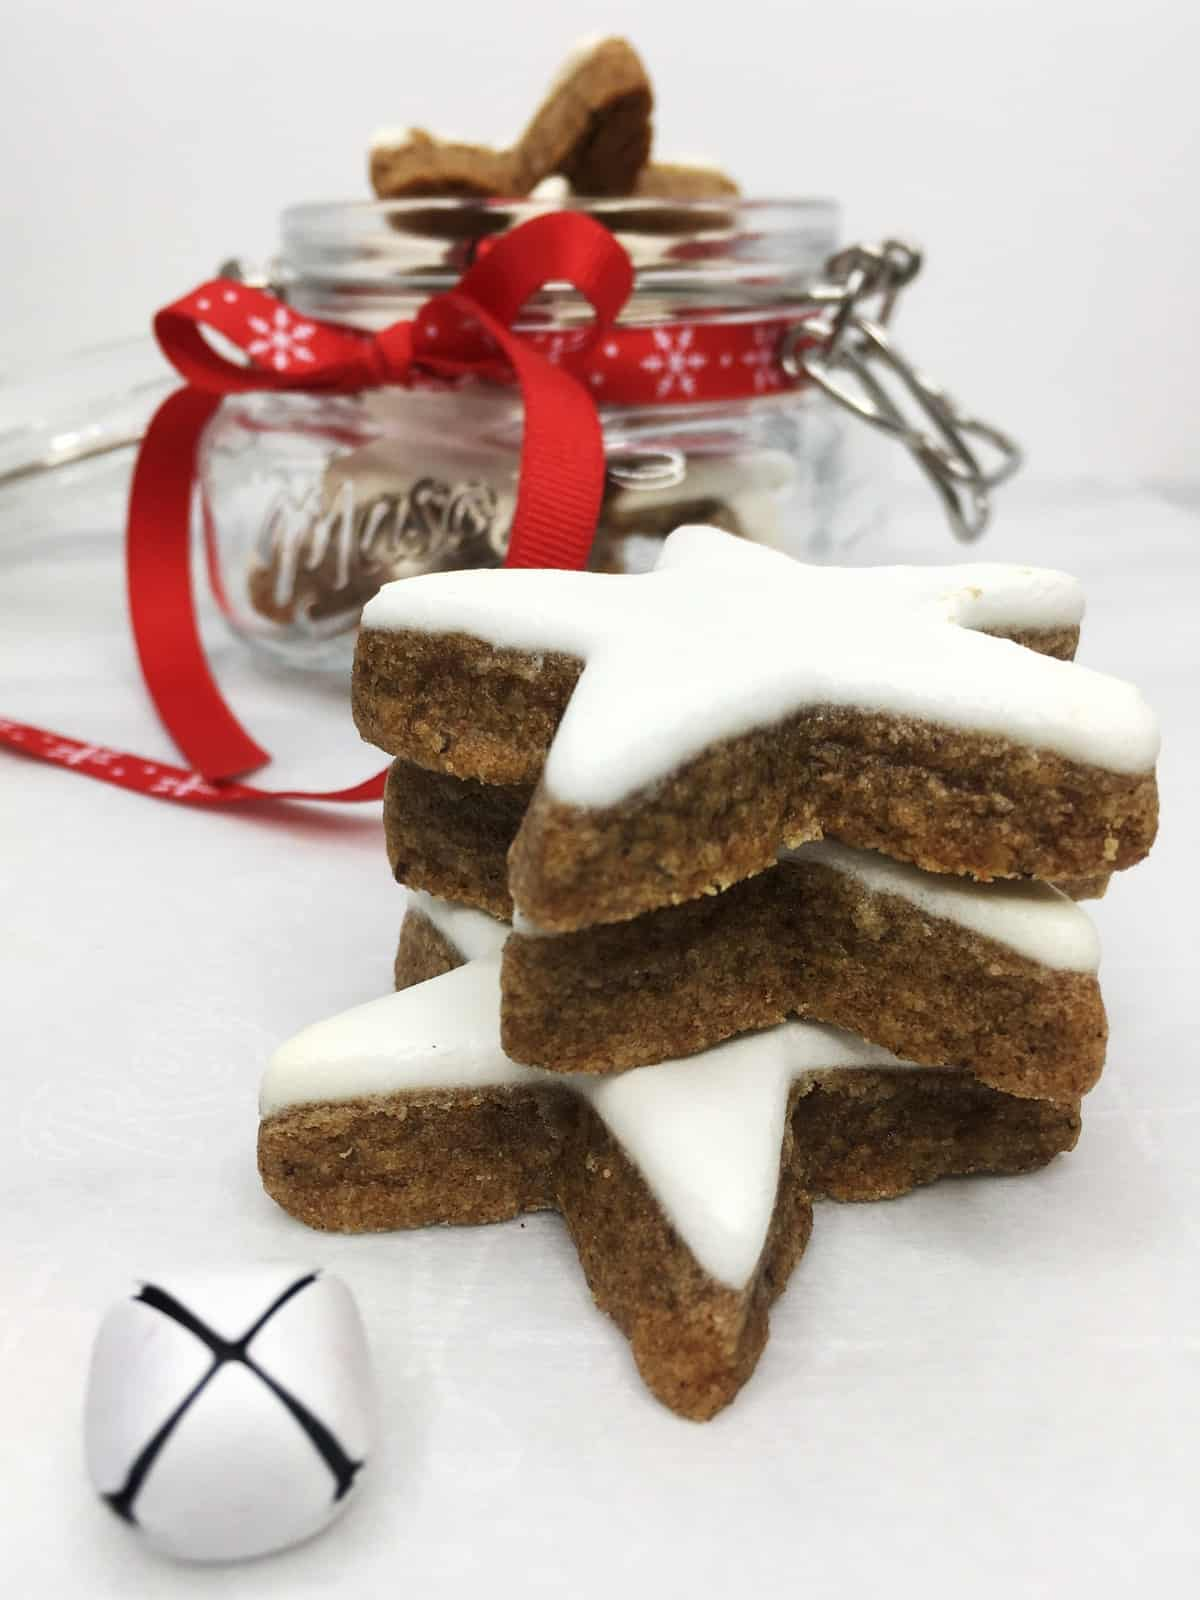 Three star-shaped cookies with a glass jar full of cookies on background